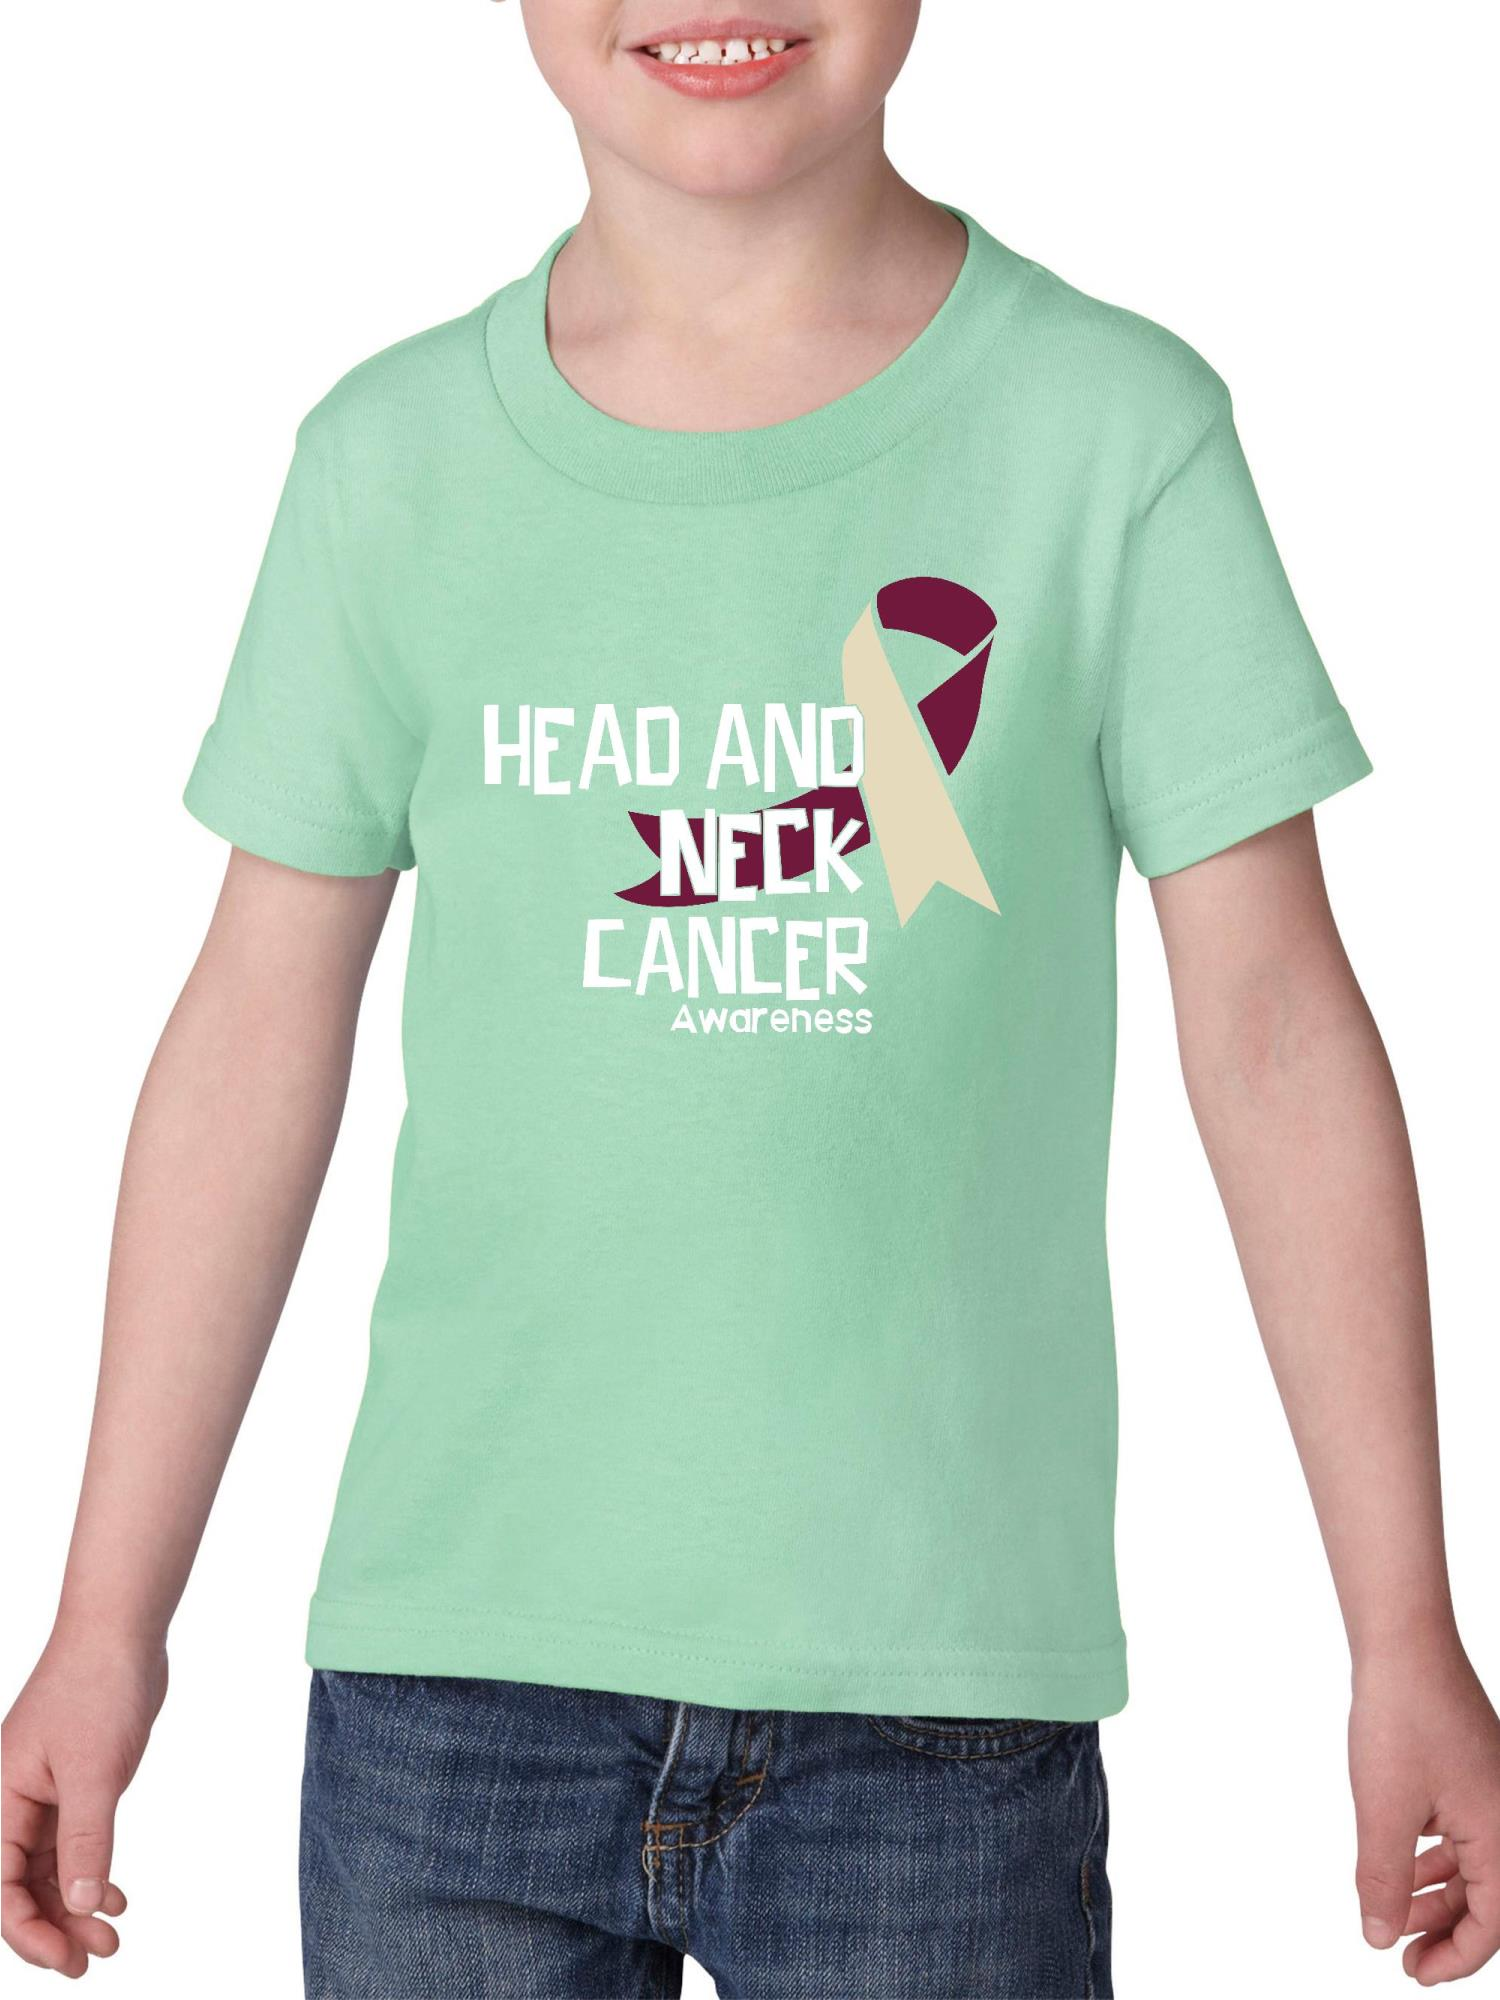 Head and Neck Cancer Awareness Heavy Cotton Toddler Kids T-Shirt Tee Clothing